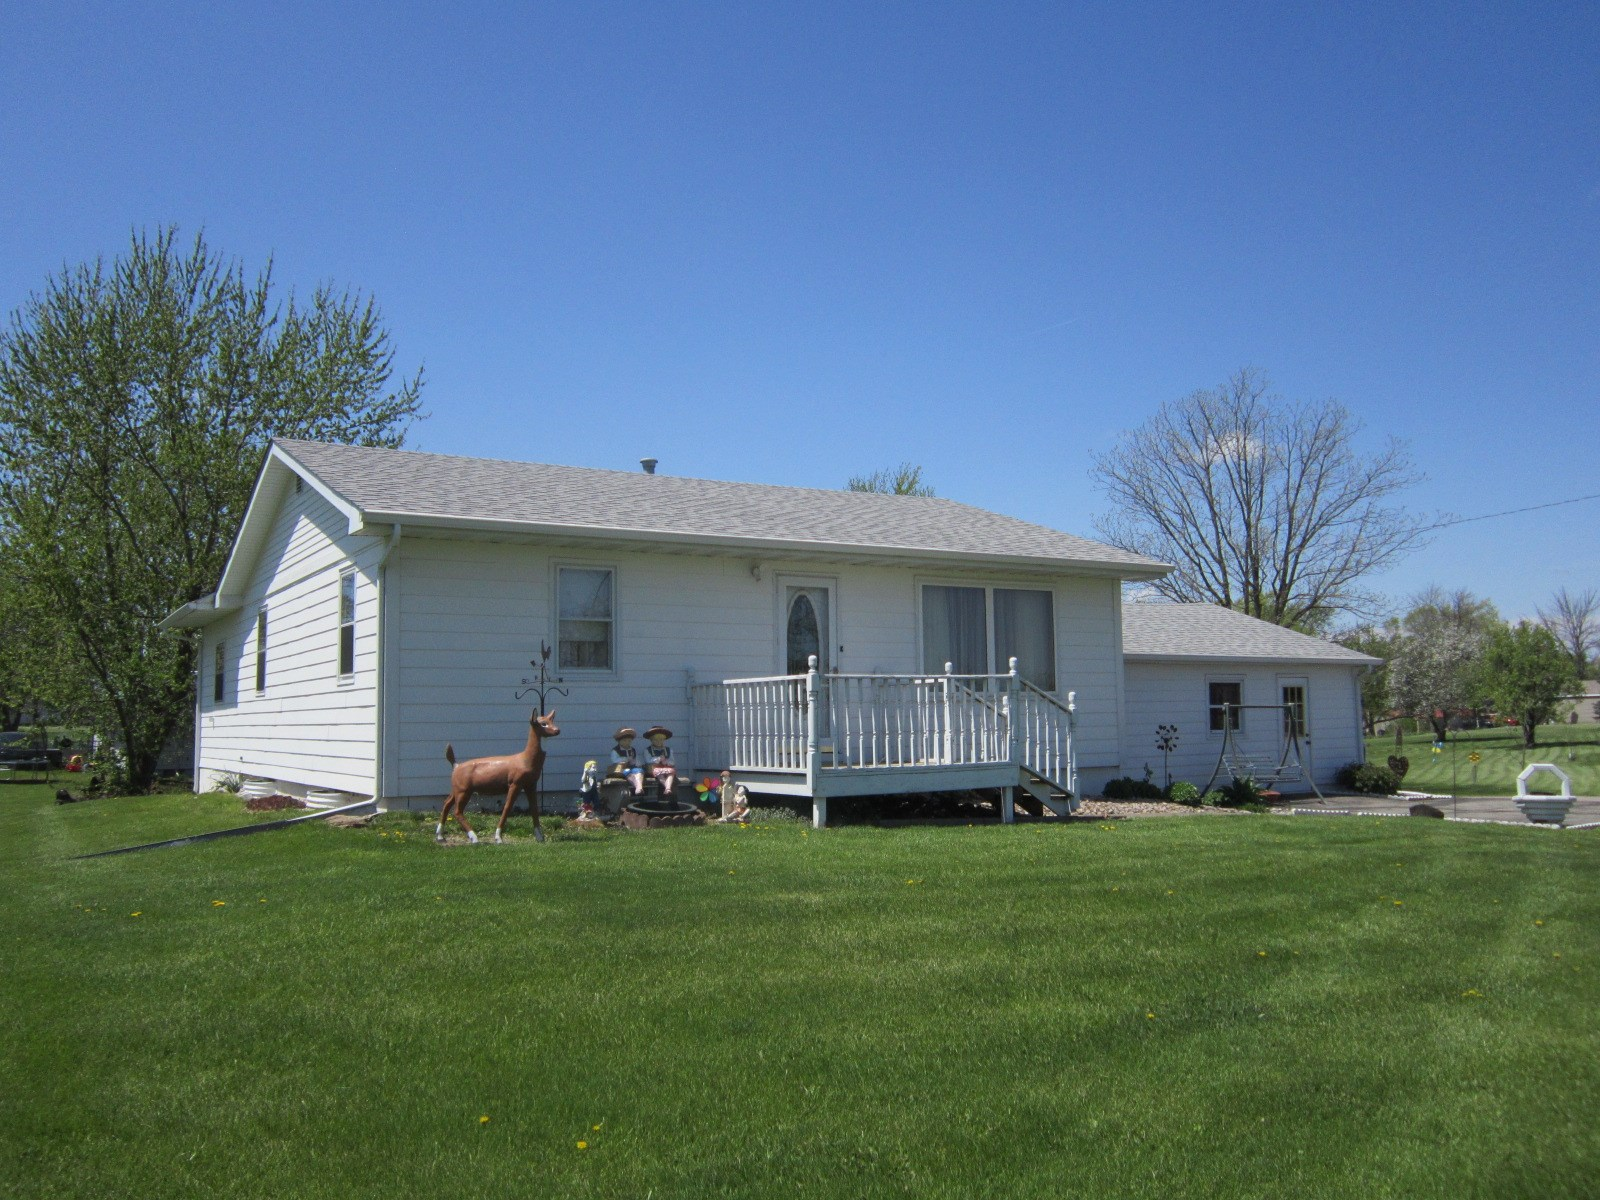 Home for Sale, Lovilia, IA